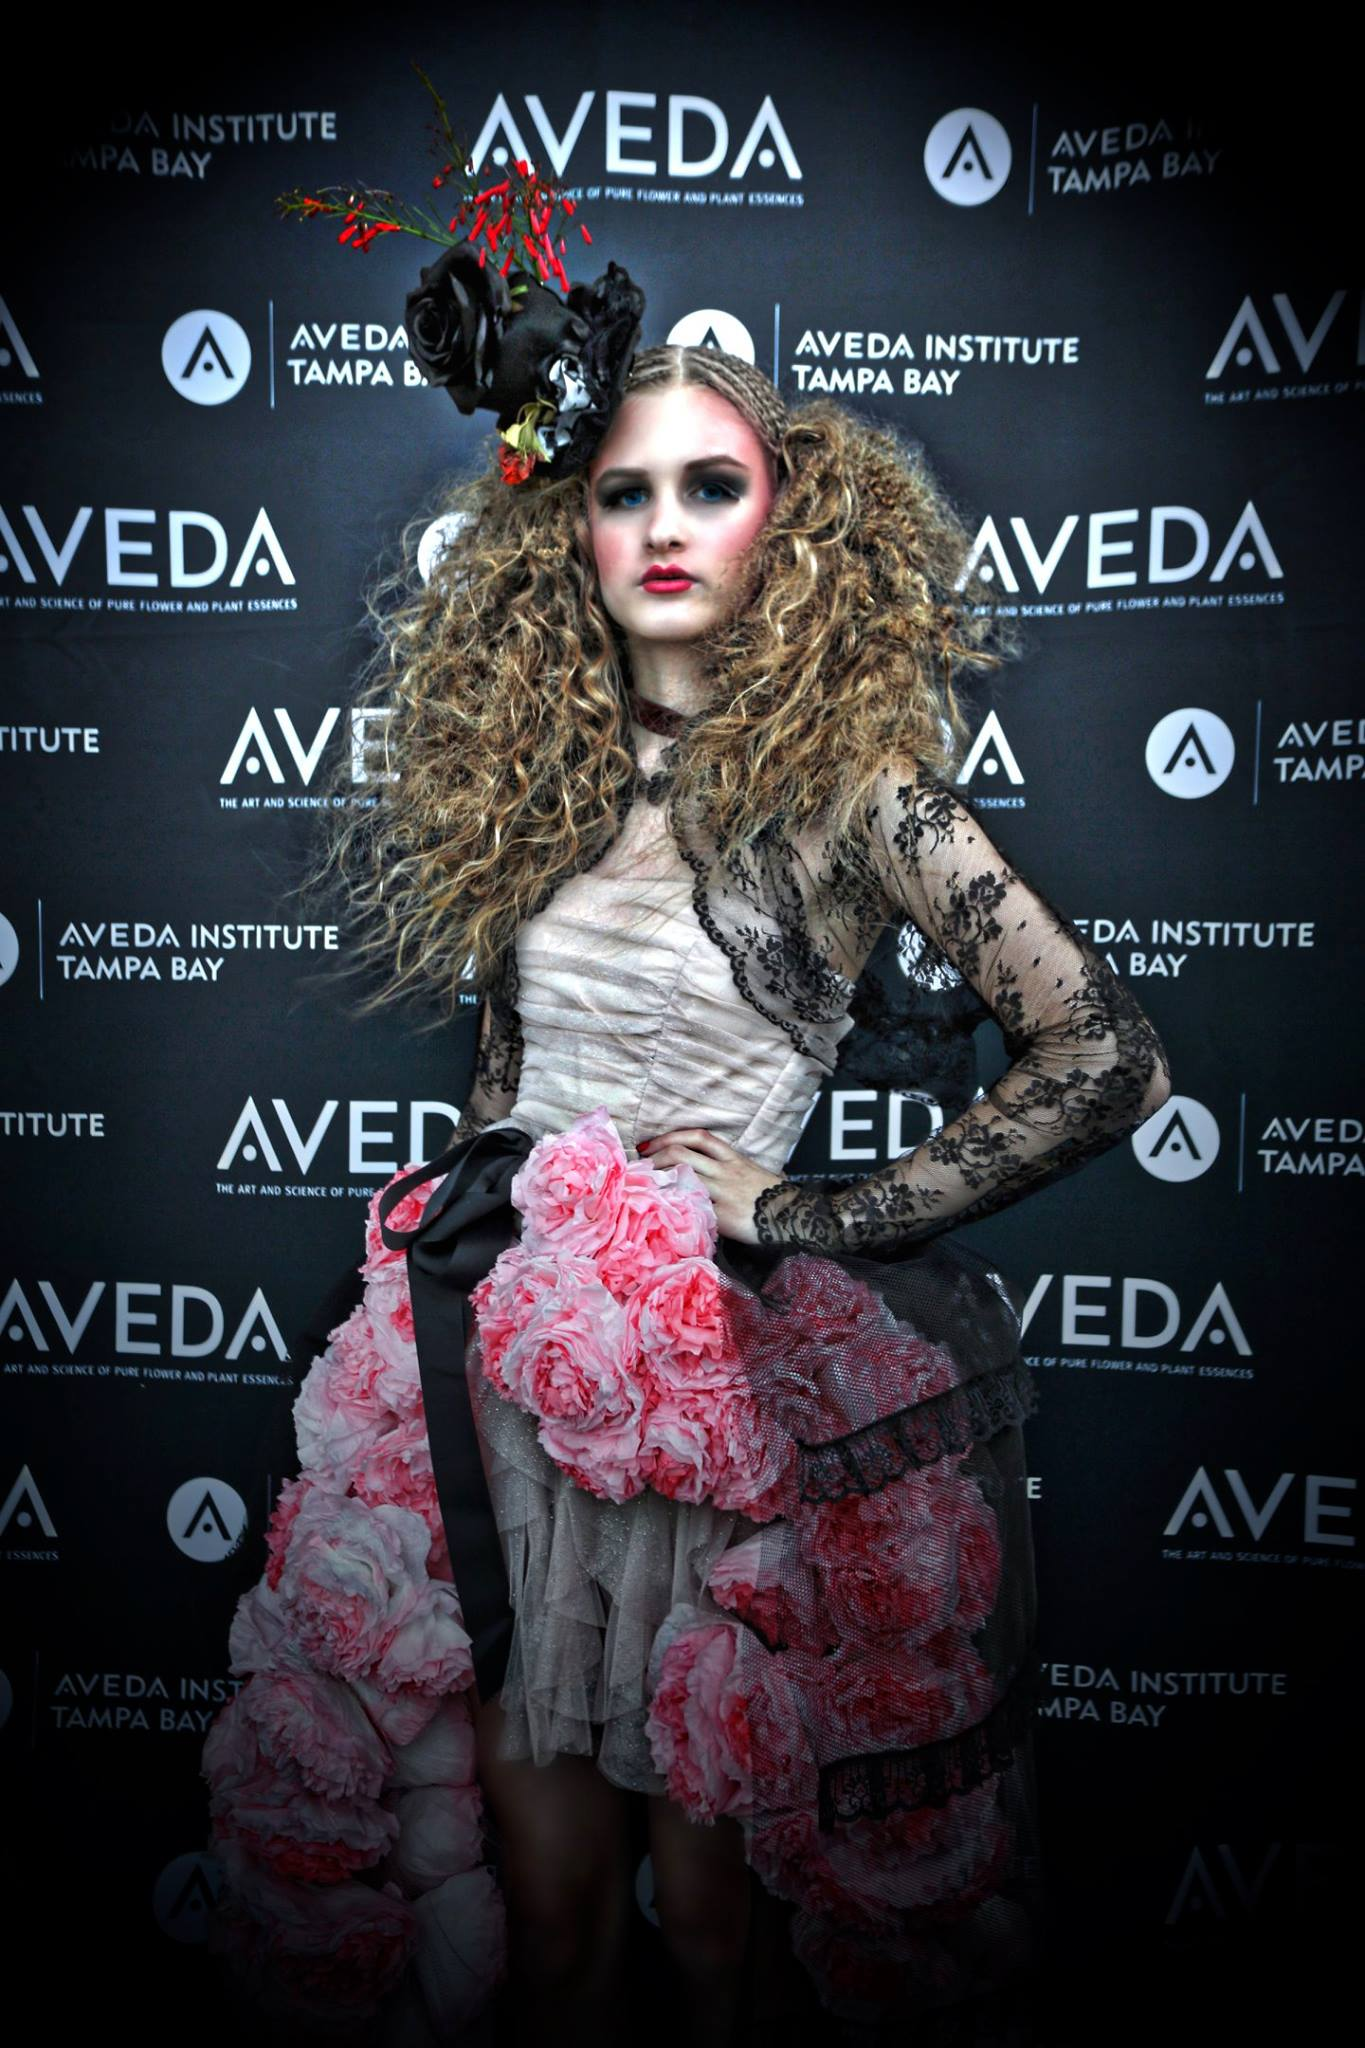 Aveda Catwalk for Water 2016